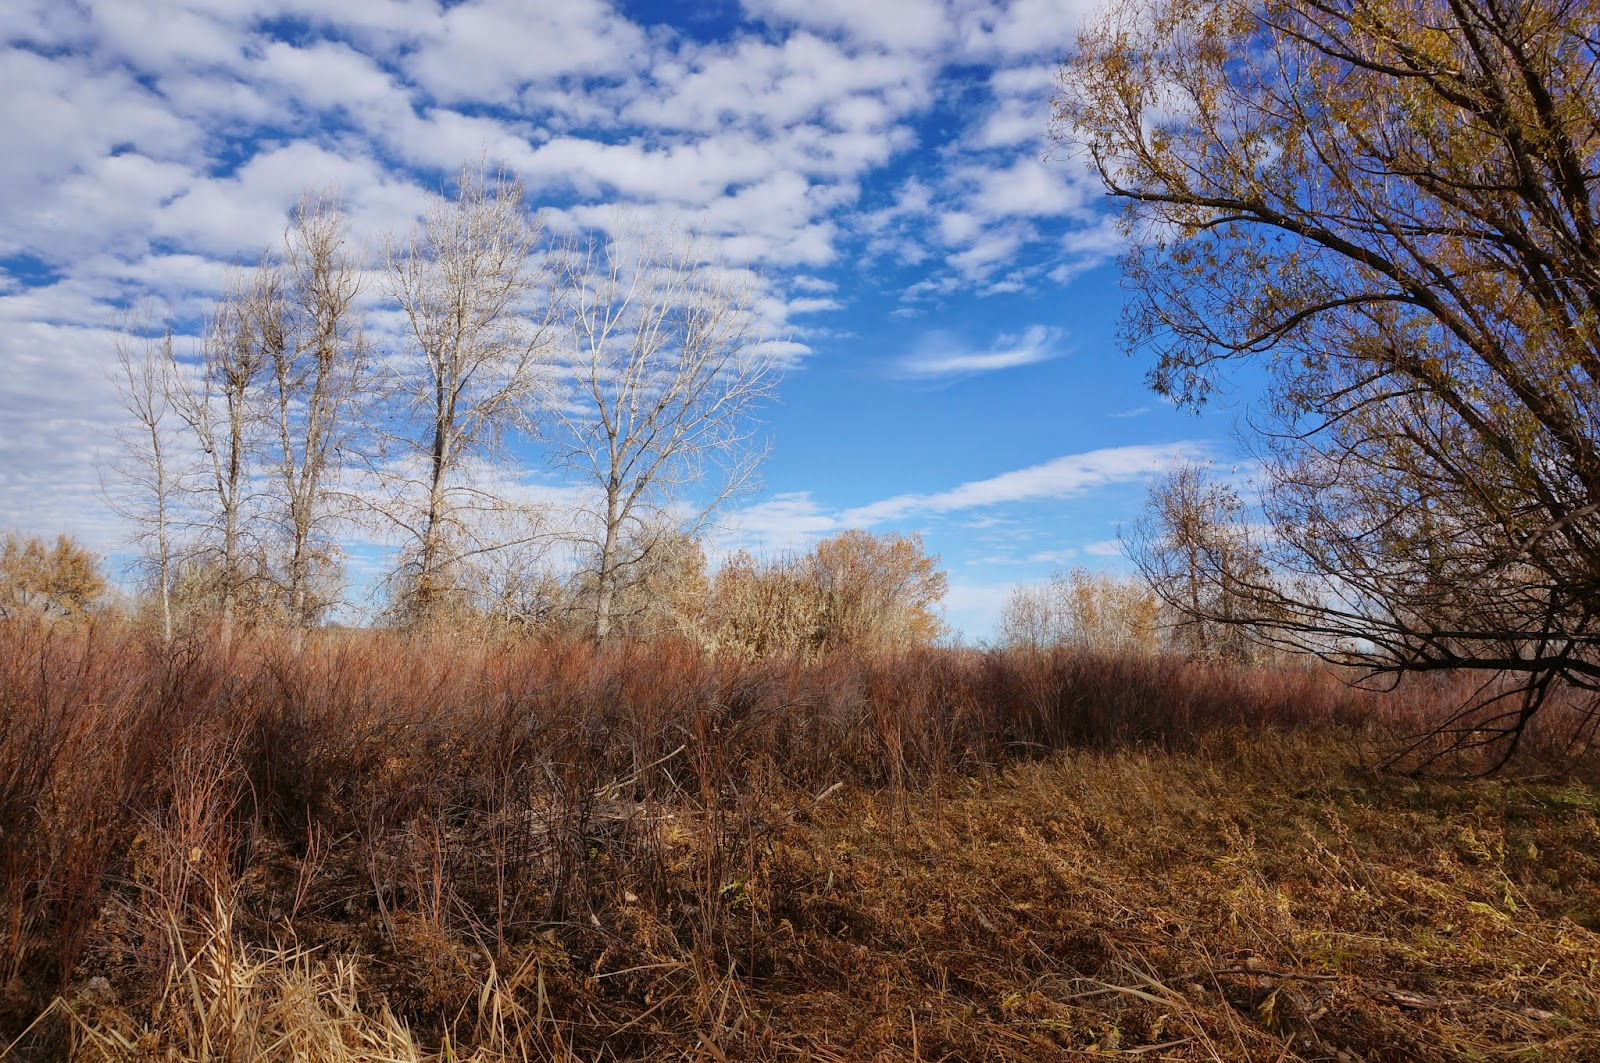 Go hike colorado wetlands preserve cherry creek state park for Cherrycreek